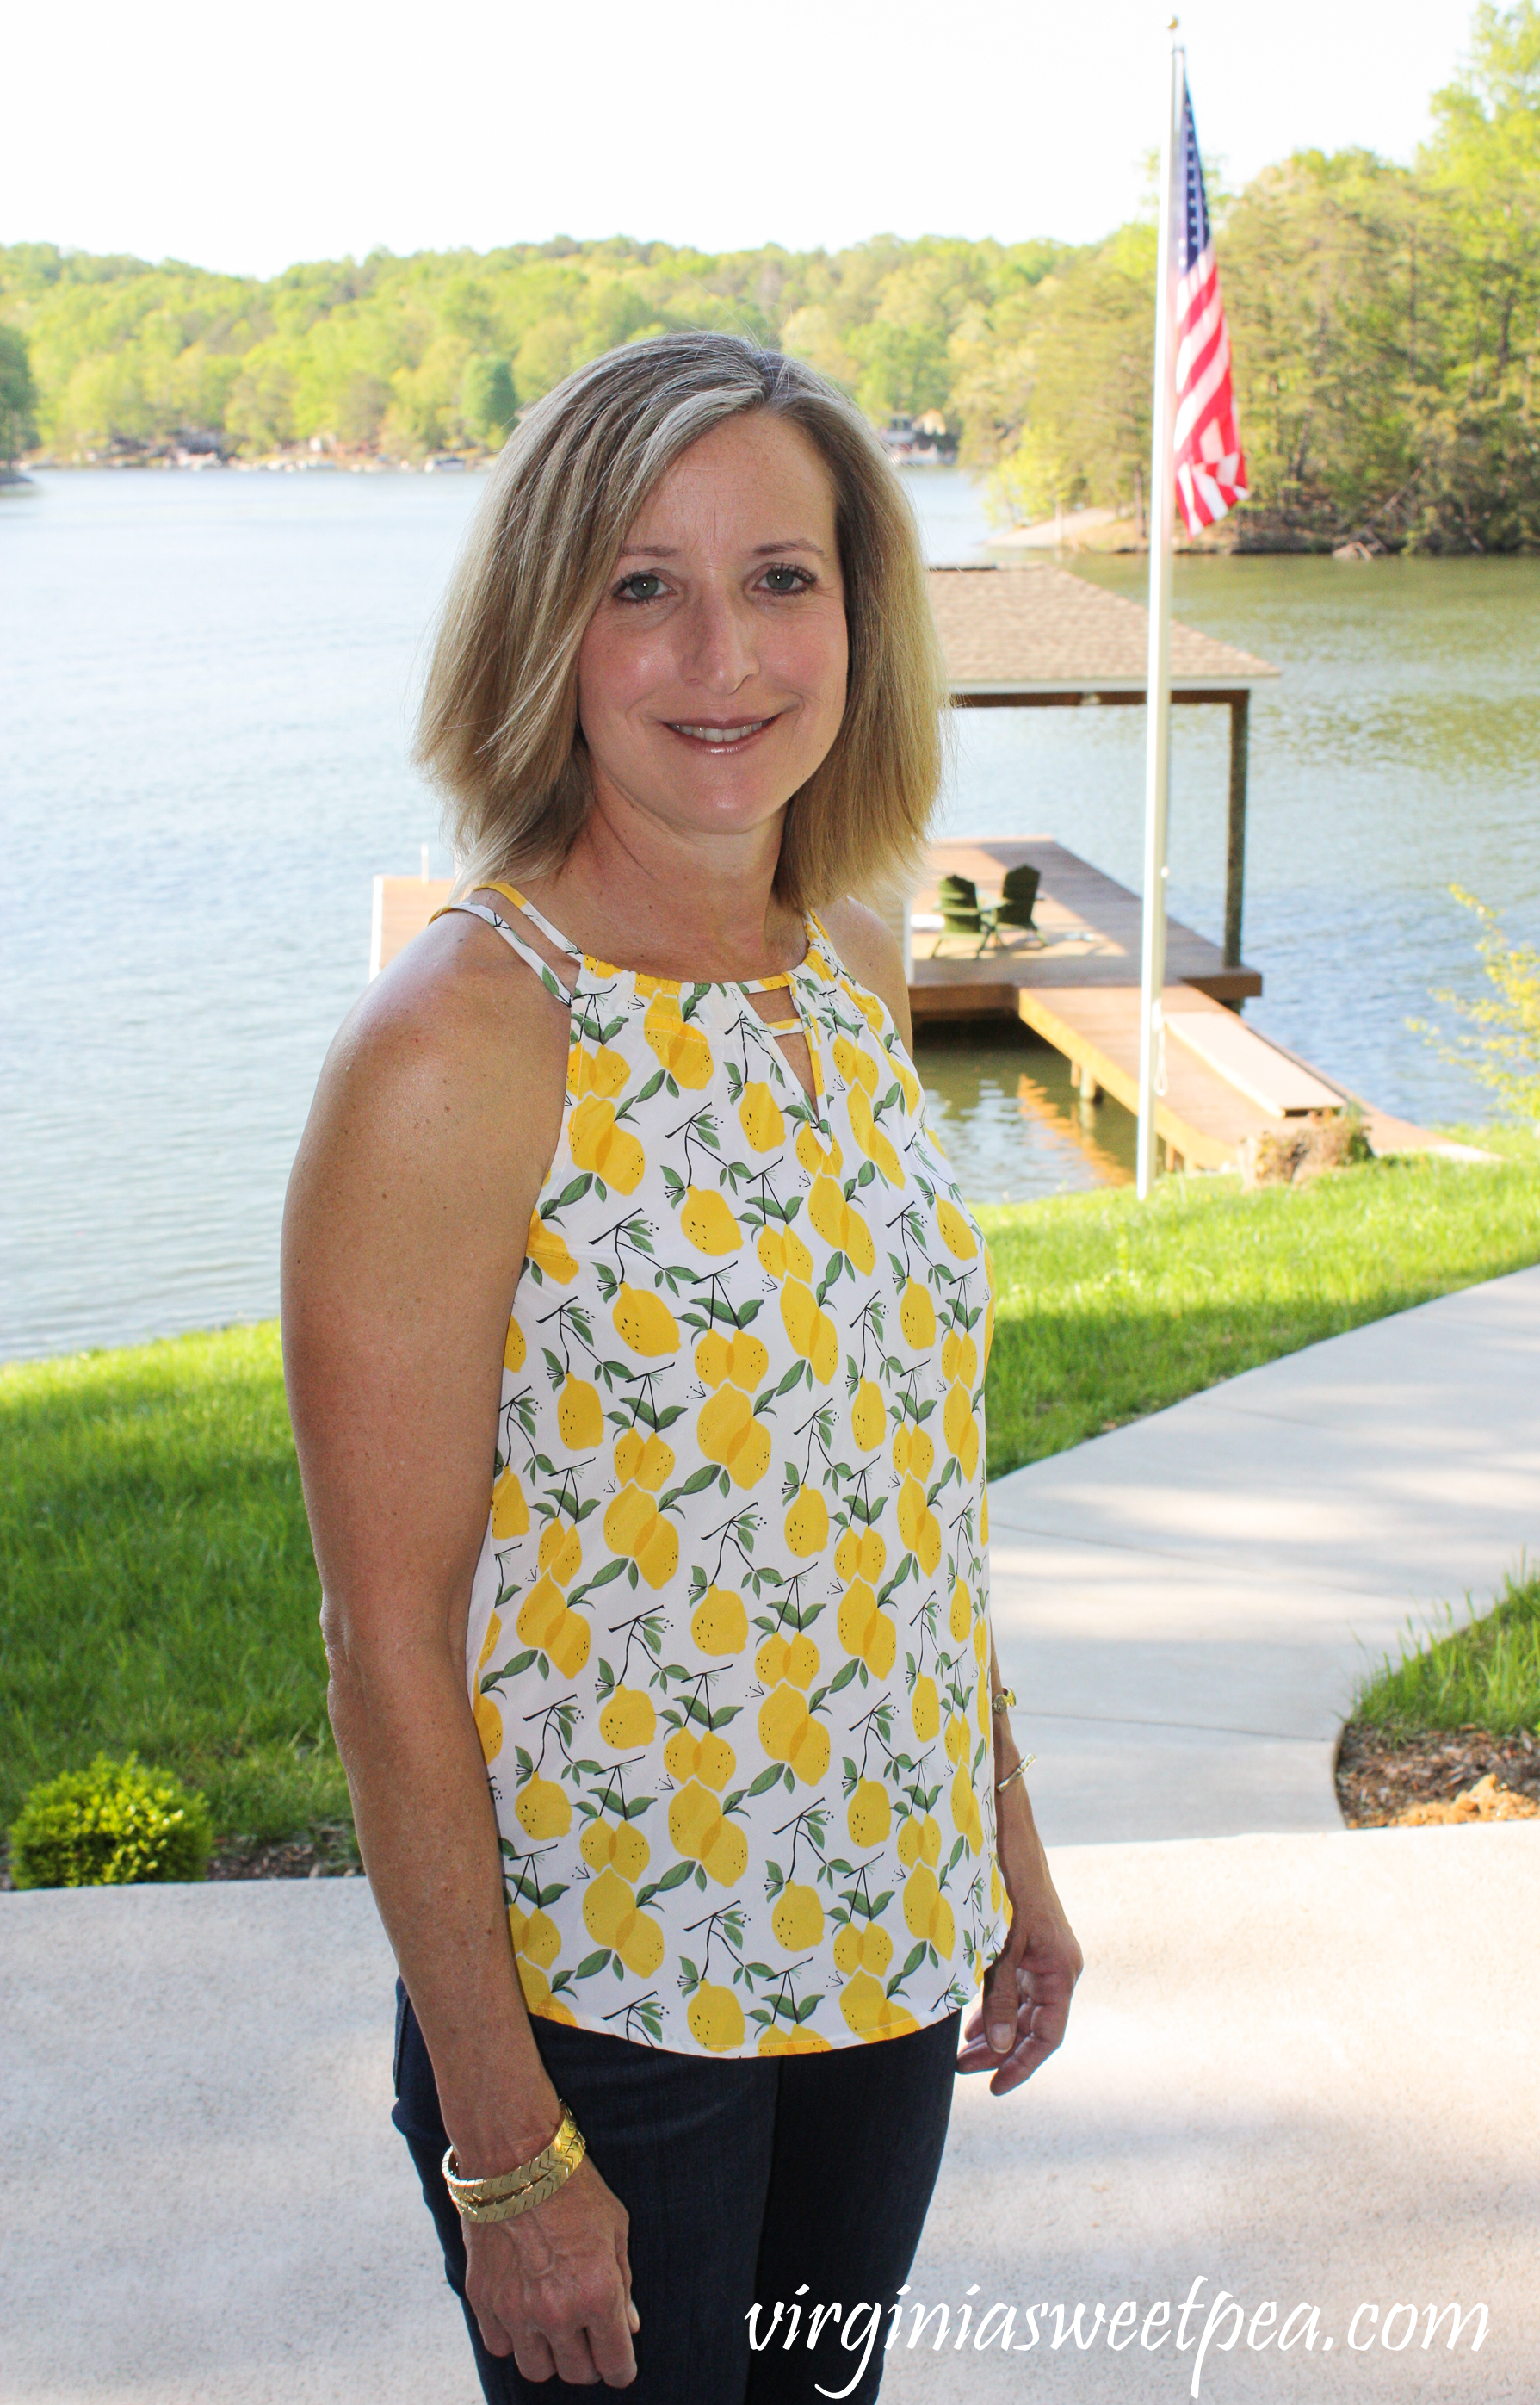 Stitch Fix Review for May 2019 - Market & Spruce Mixed Media Halter Top #stitchfix #stitchfixreview #stitchfixsummer